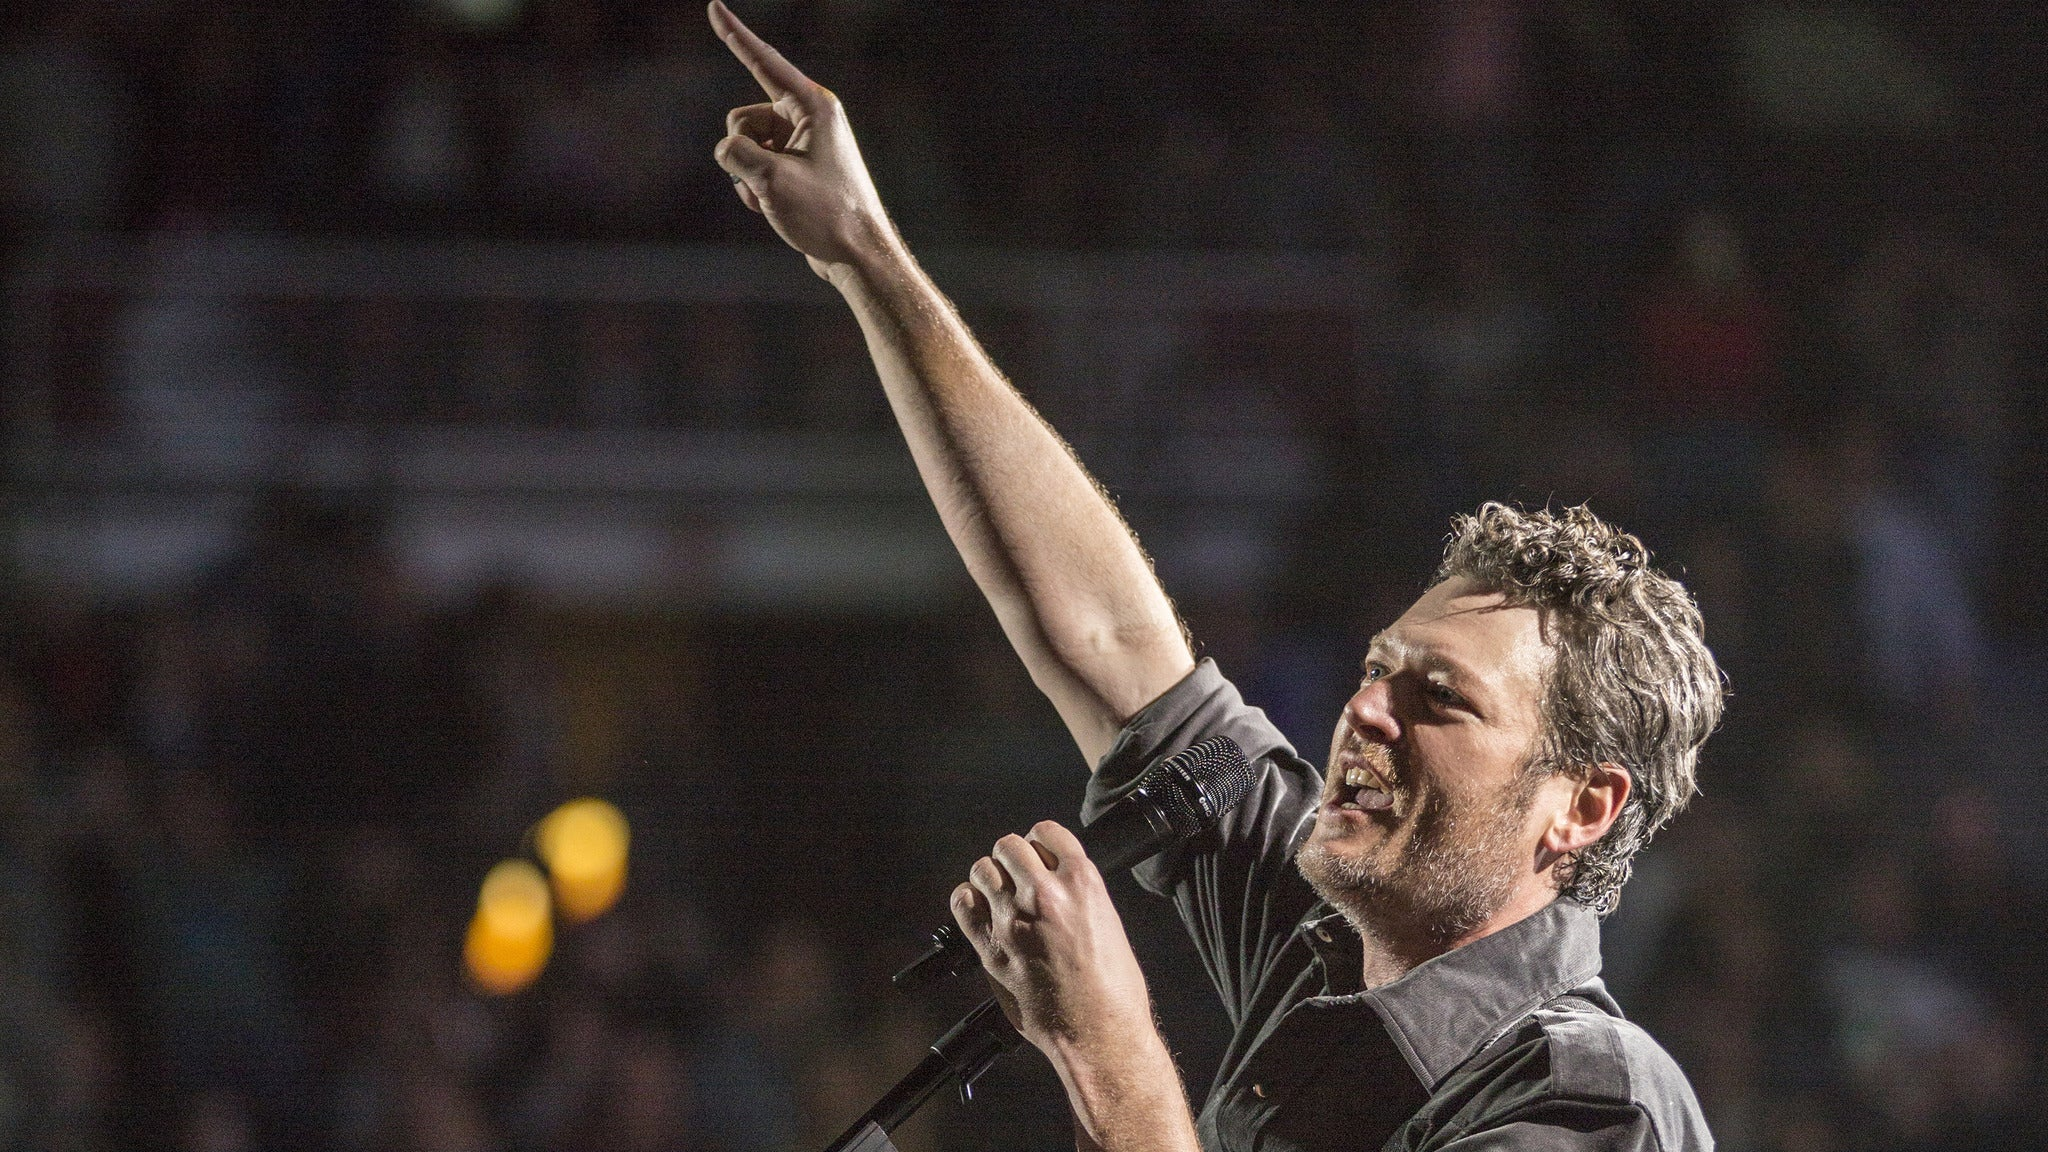 Blake Shelton: Country Music Freaks Tour at Van Andel Arena